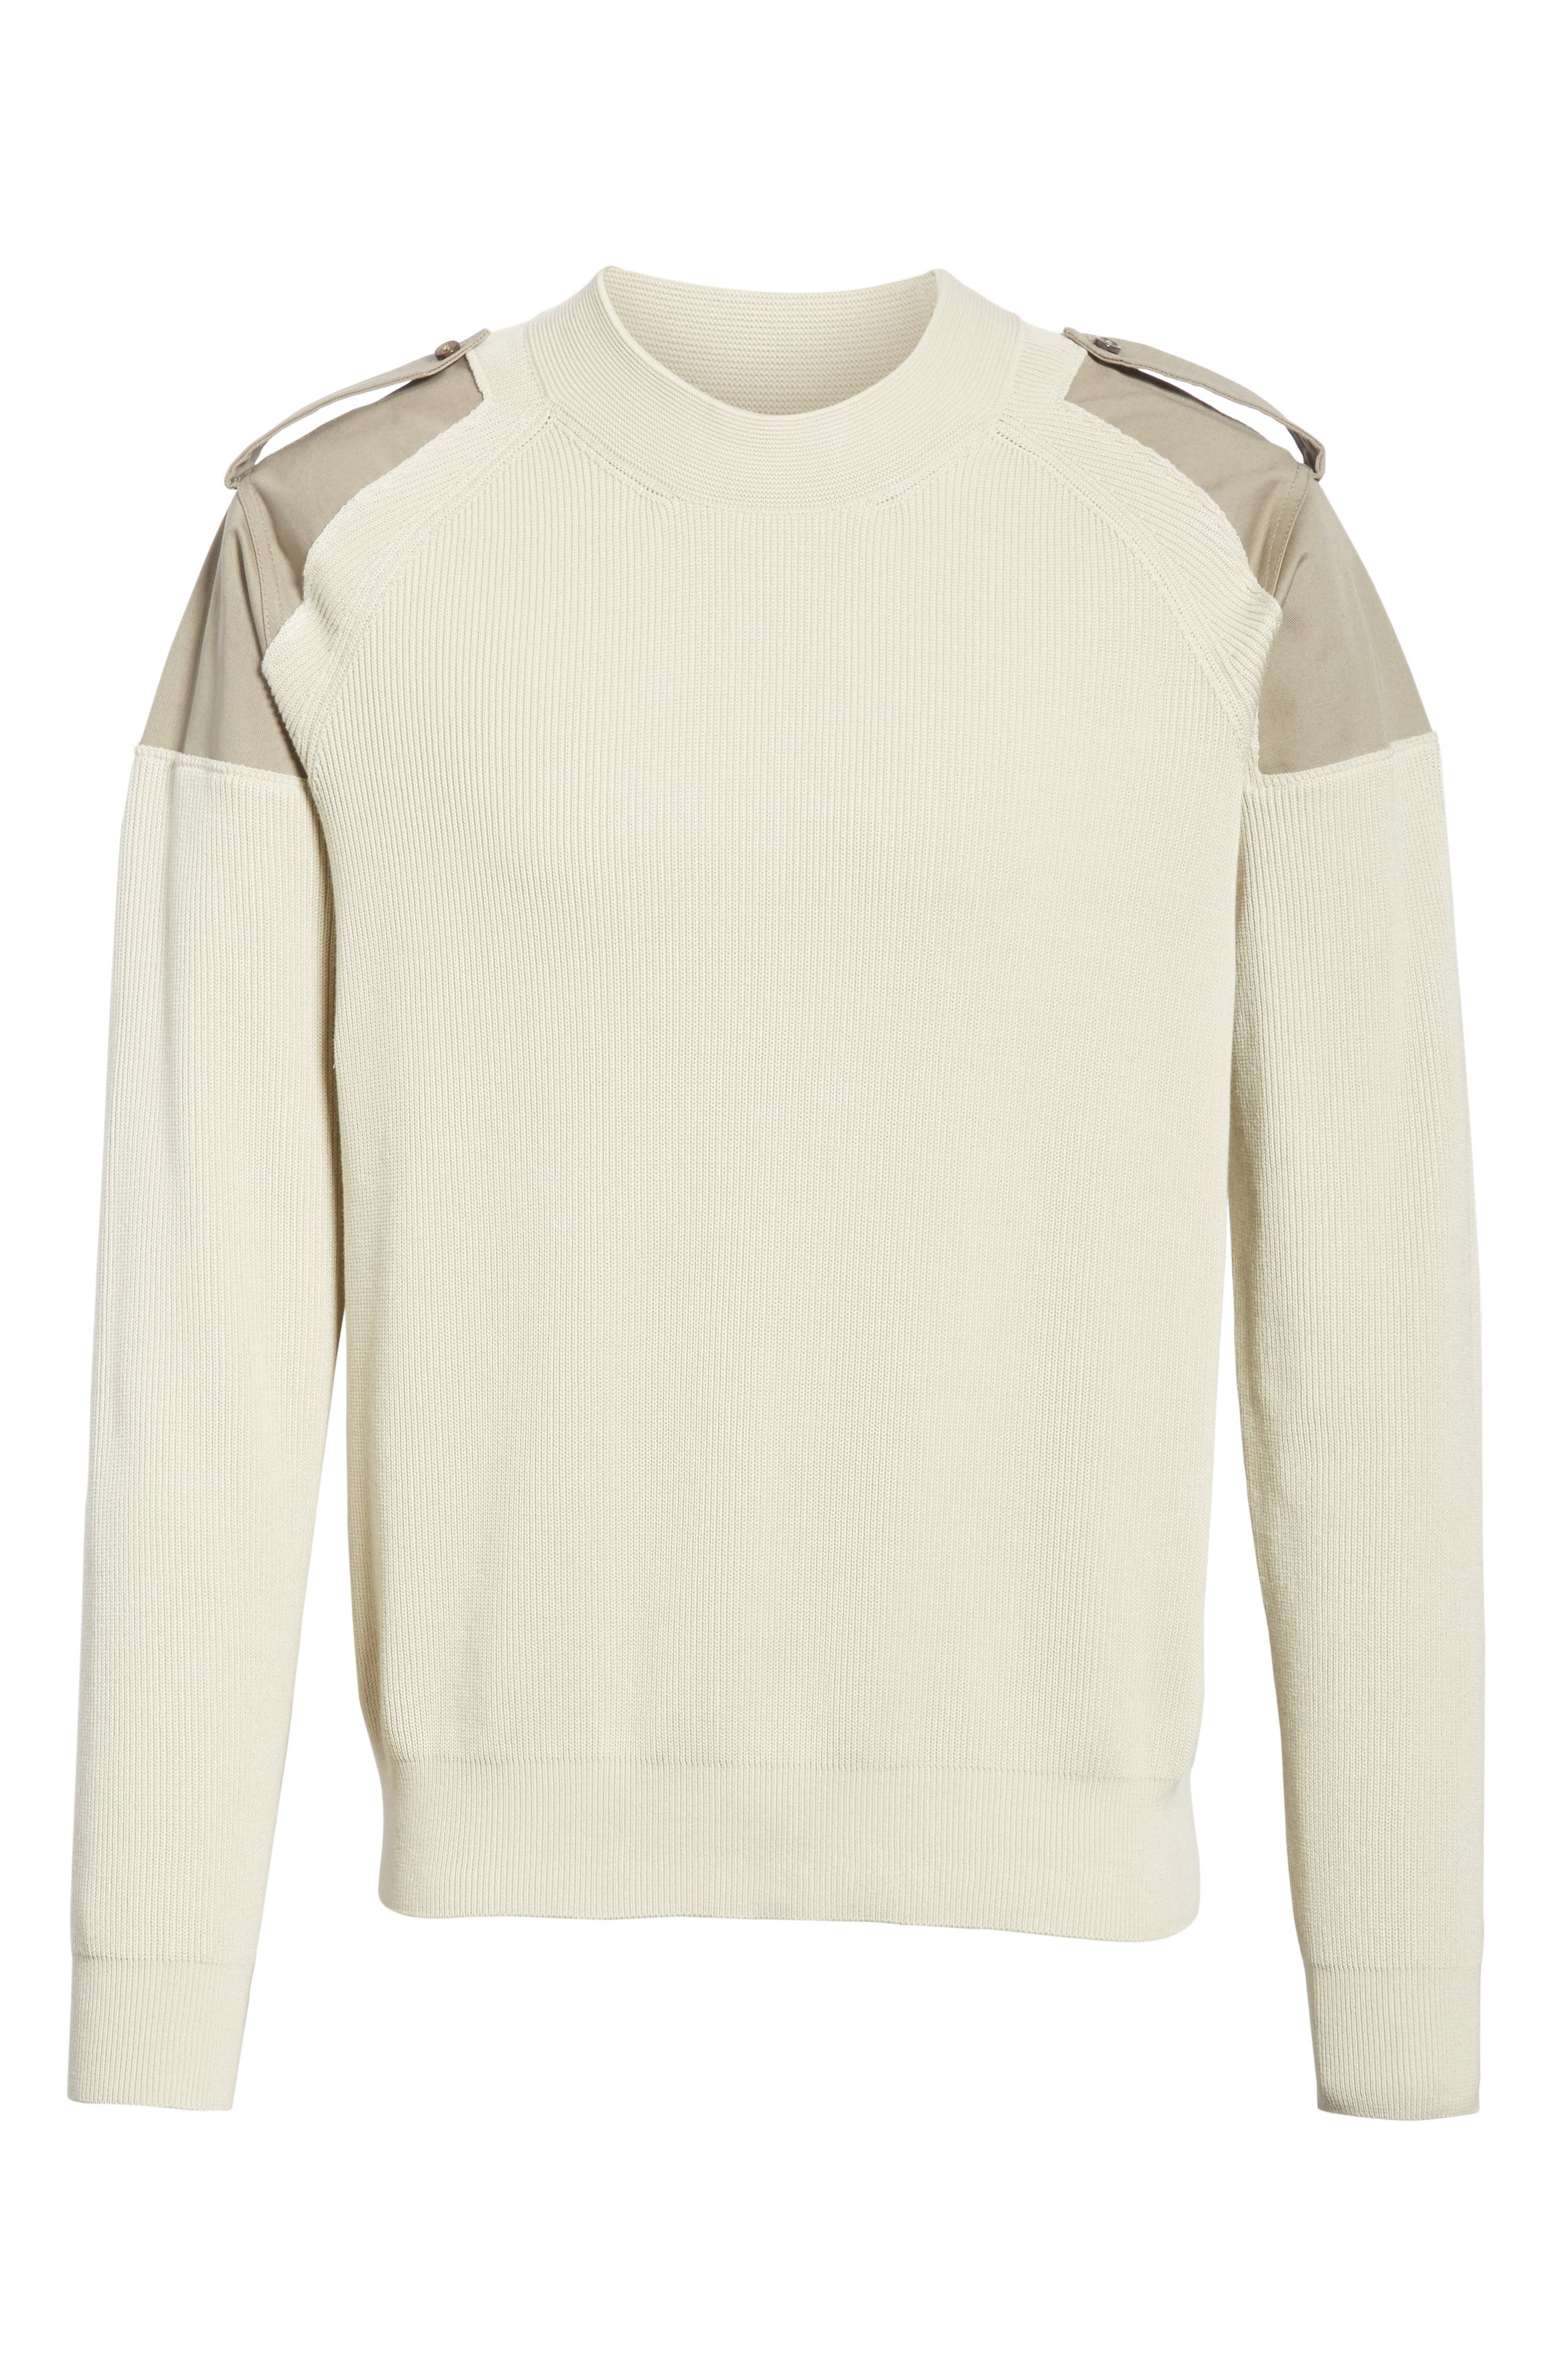 Two-Tone Military Sweater,                             Alternate thumbnail 6, color,                             242